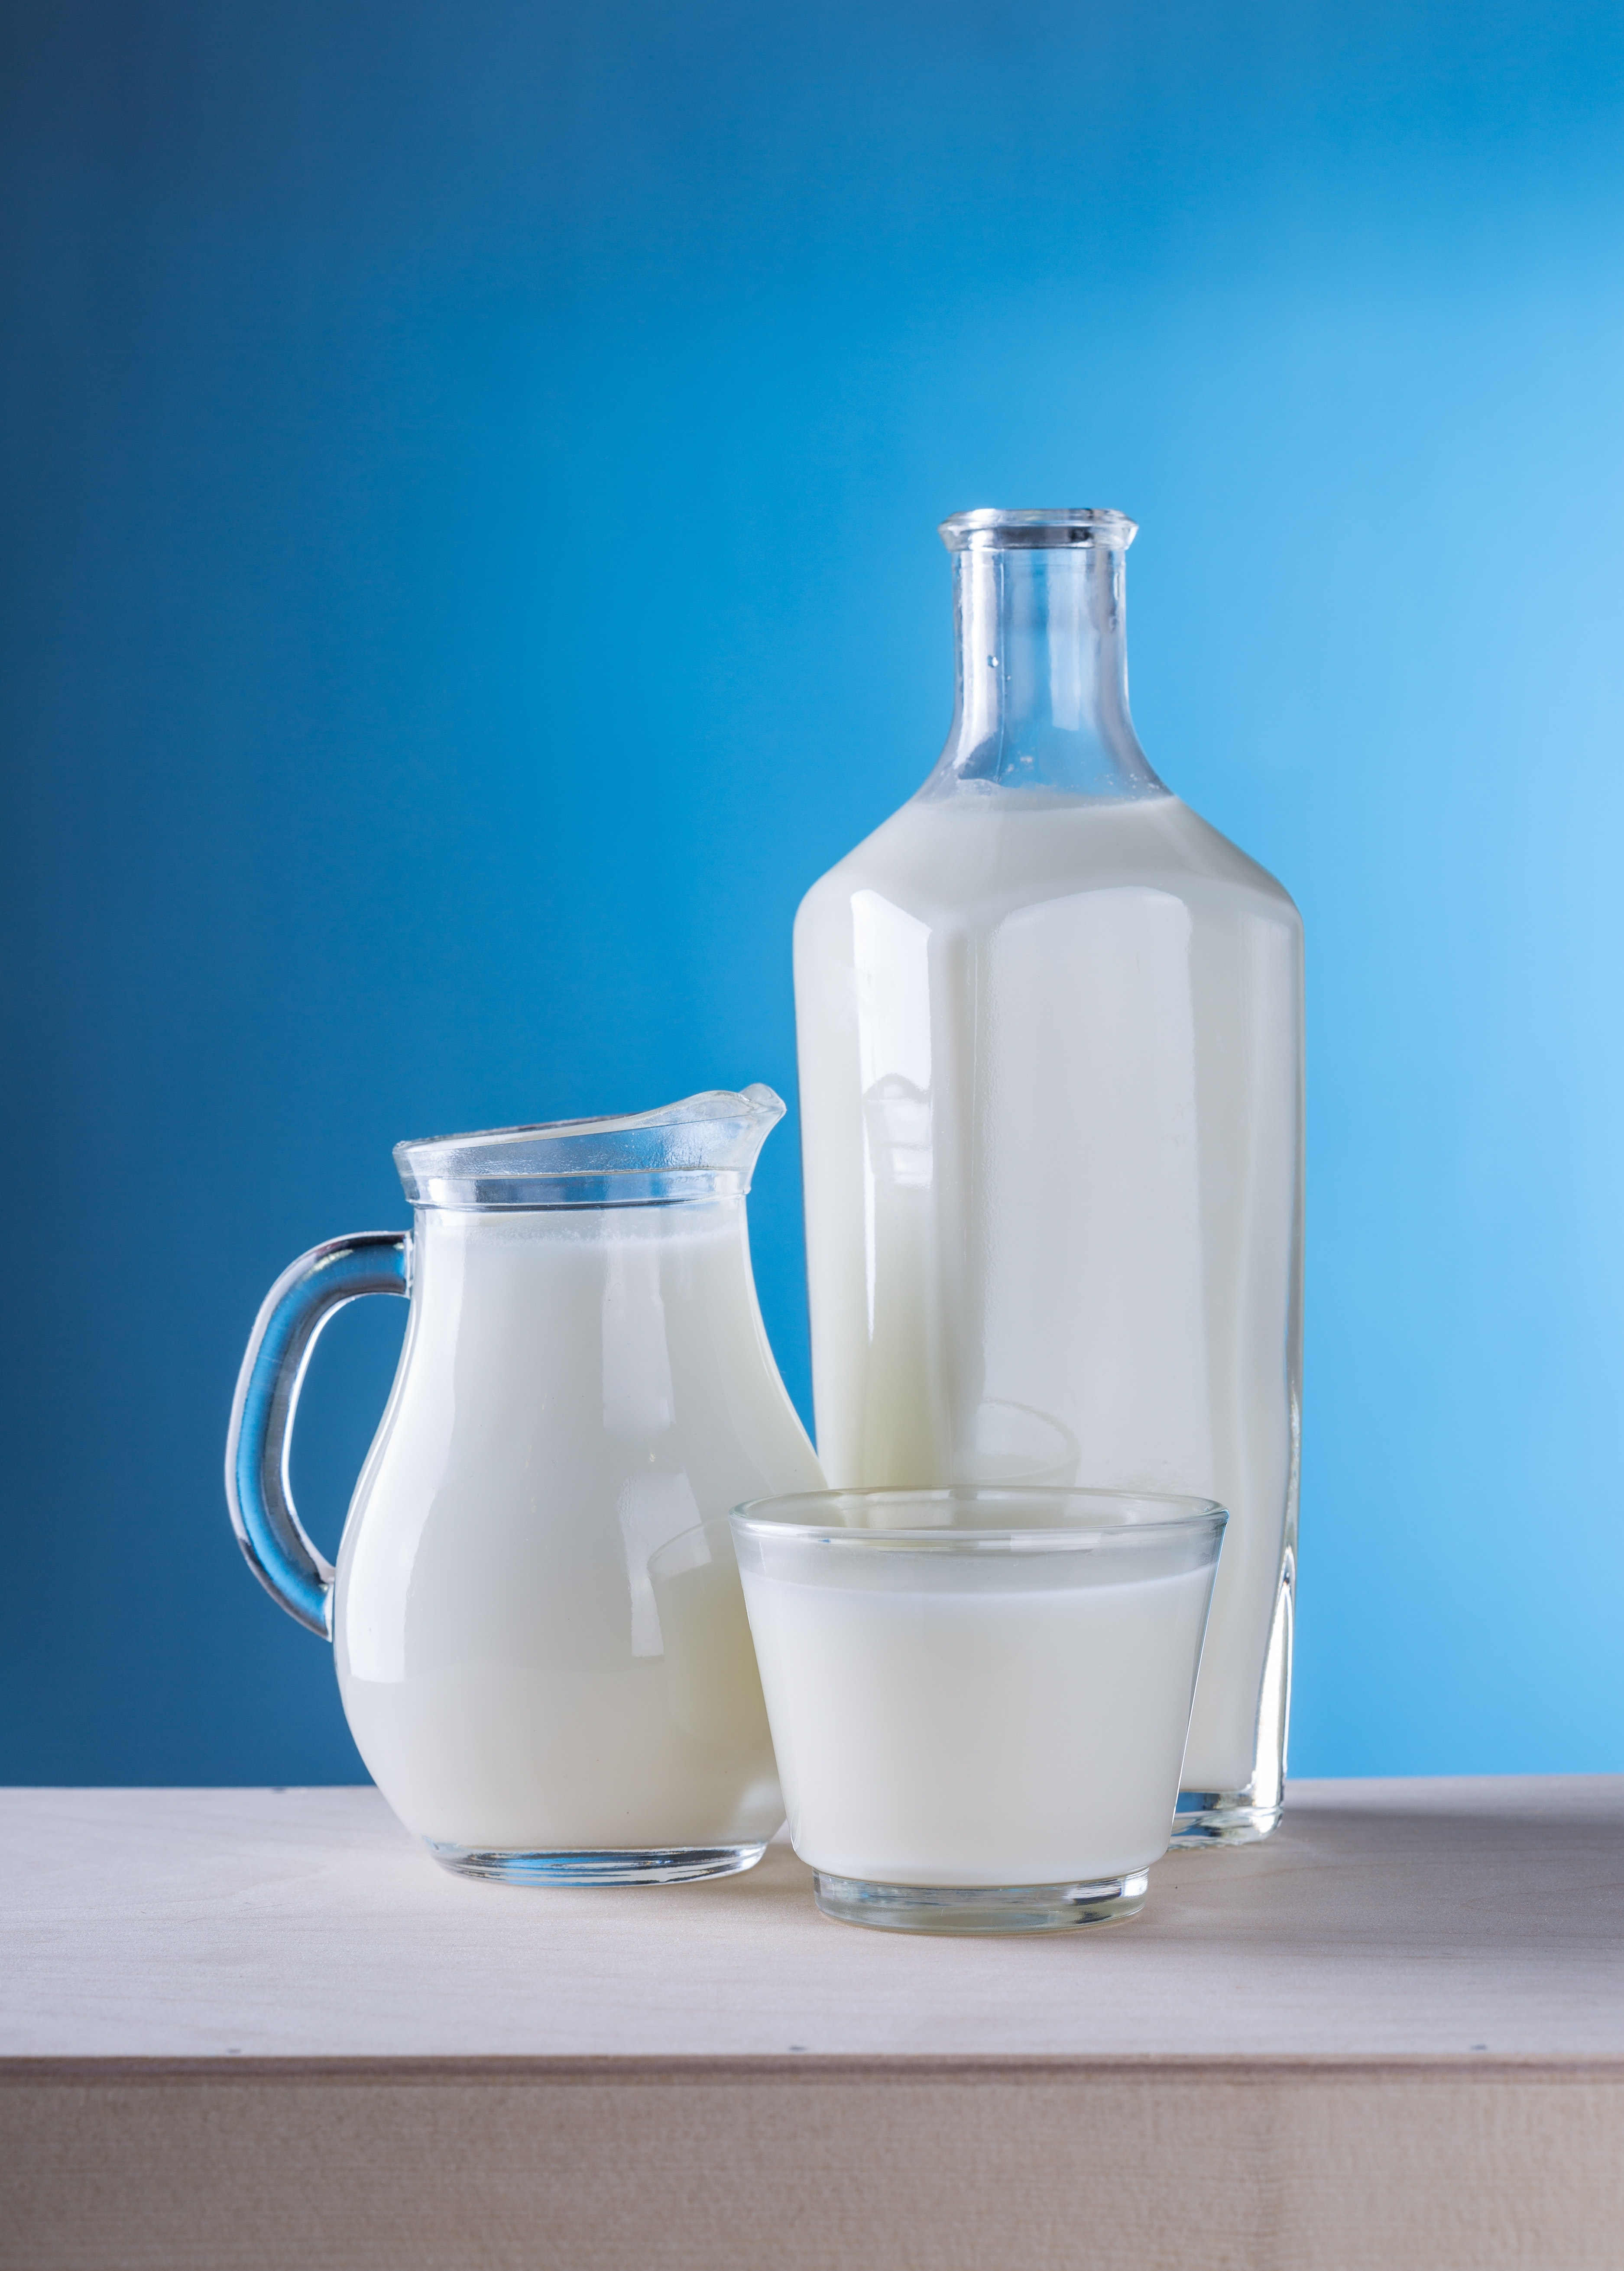 Close-up of Milk Against Blue Background, Bottle, Healthy, Products, Pitcher, HQ Photo